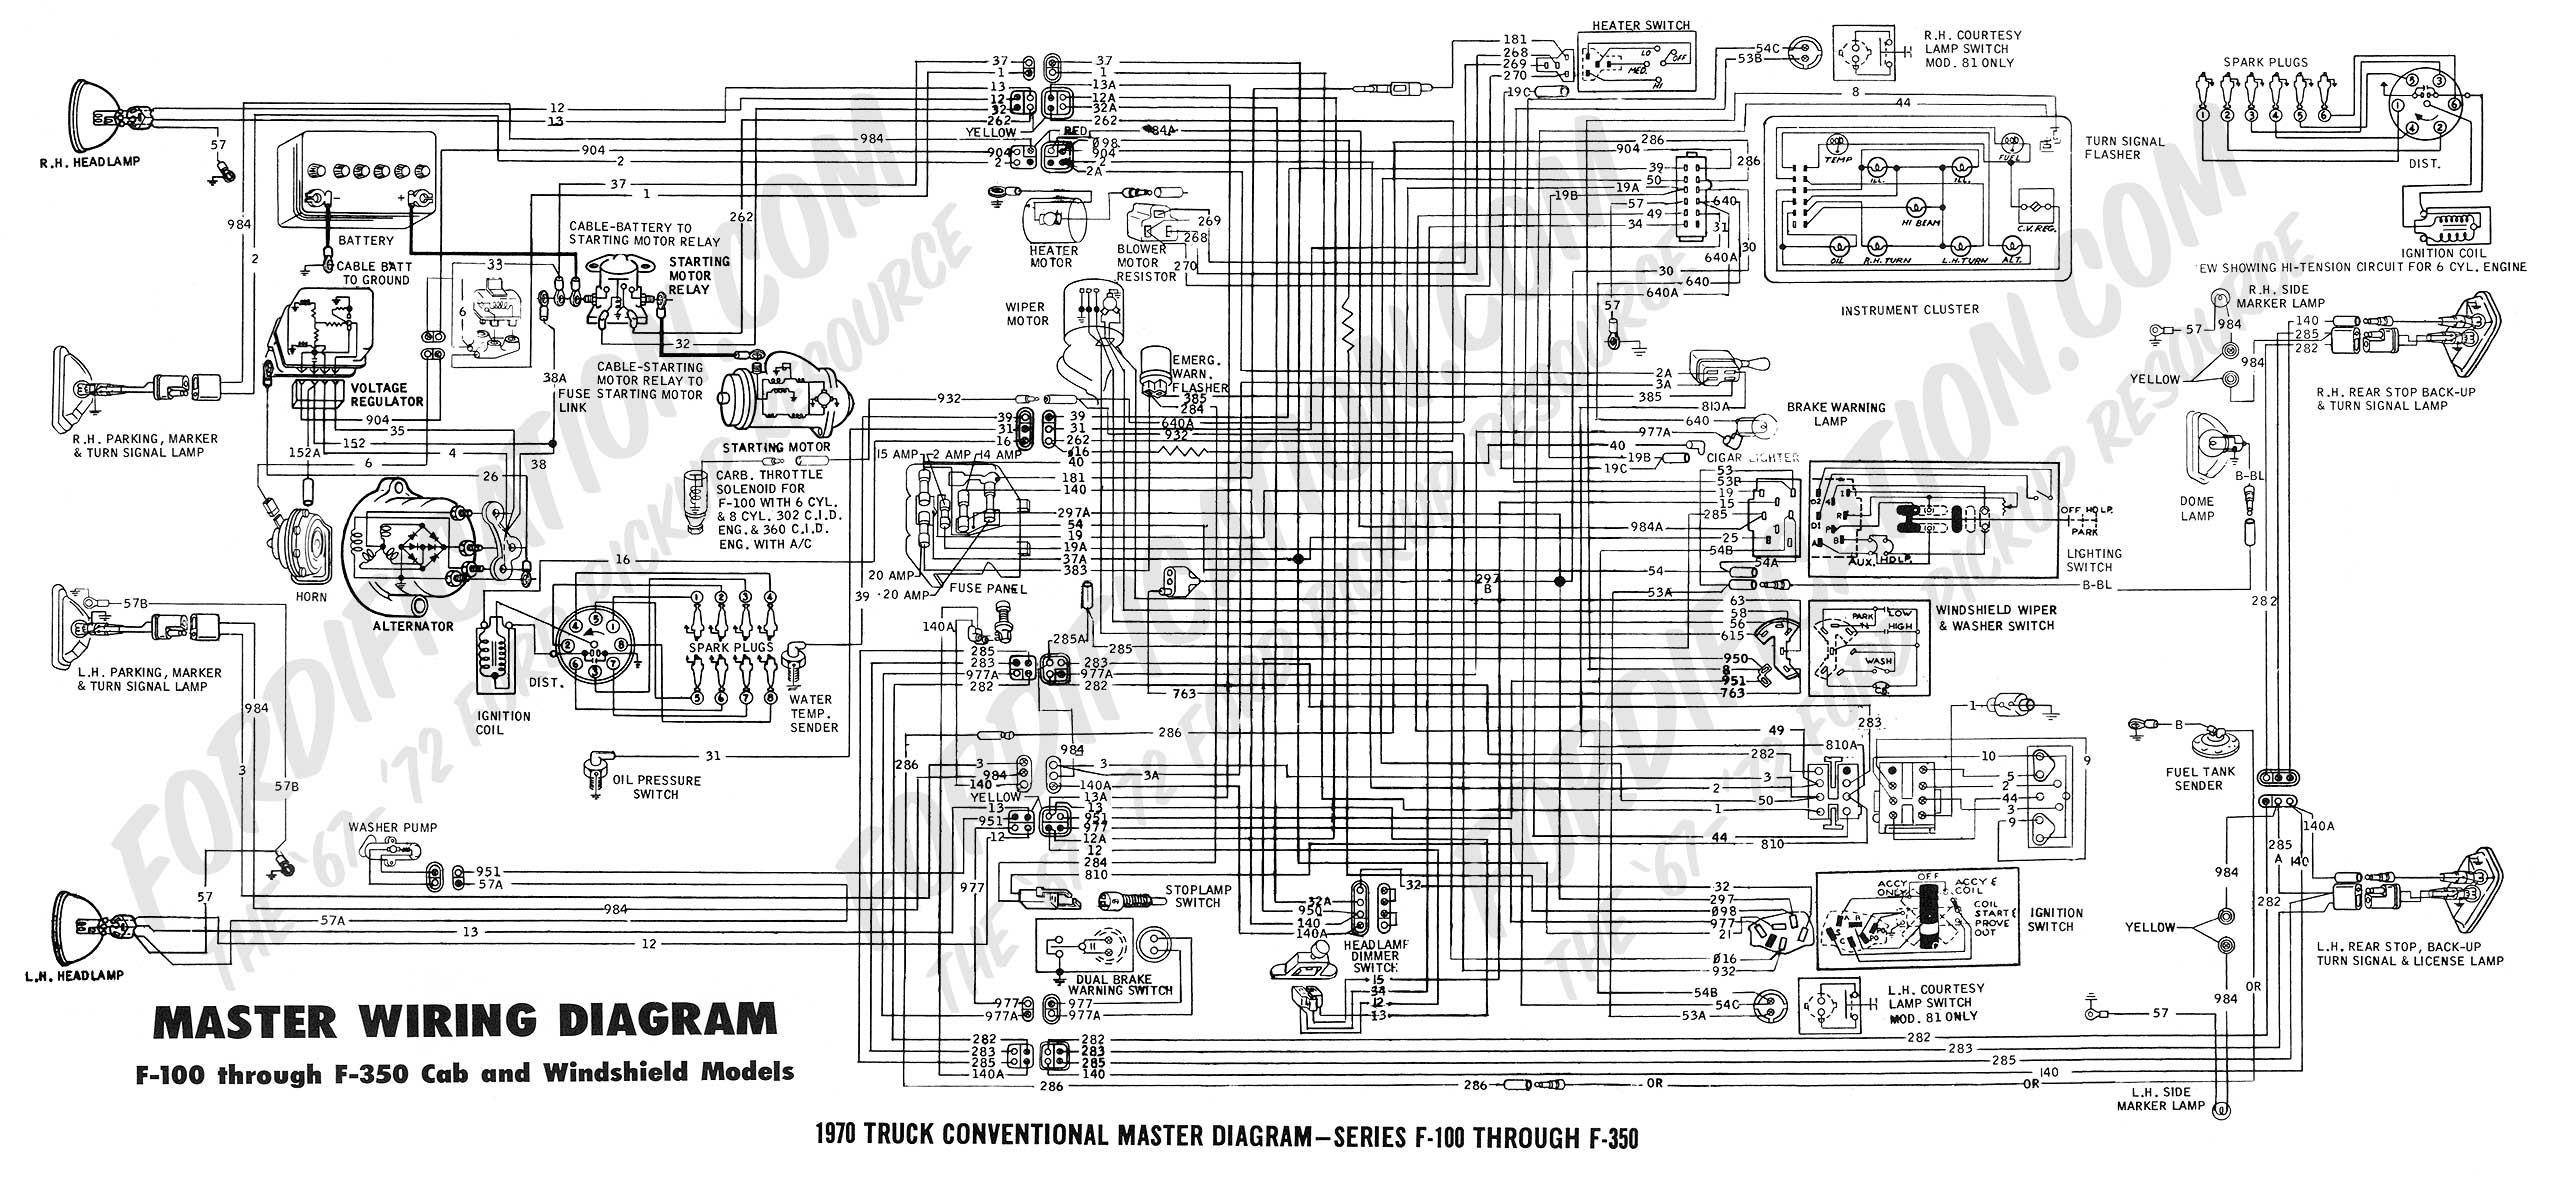 wiring diagram 70_master ford truck technical drawings and schematics section h wiring 1988 Mustang GT Trunk Latch at n-0.co